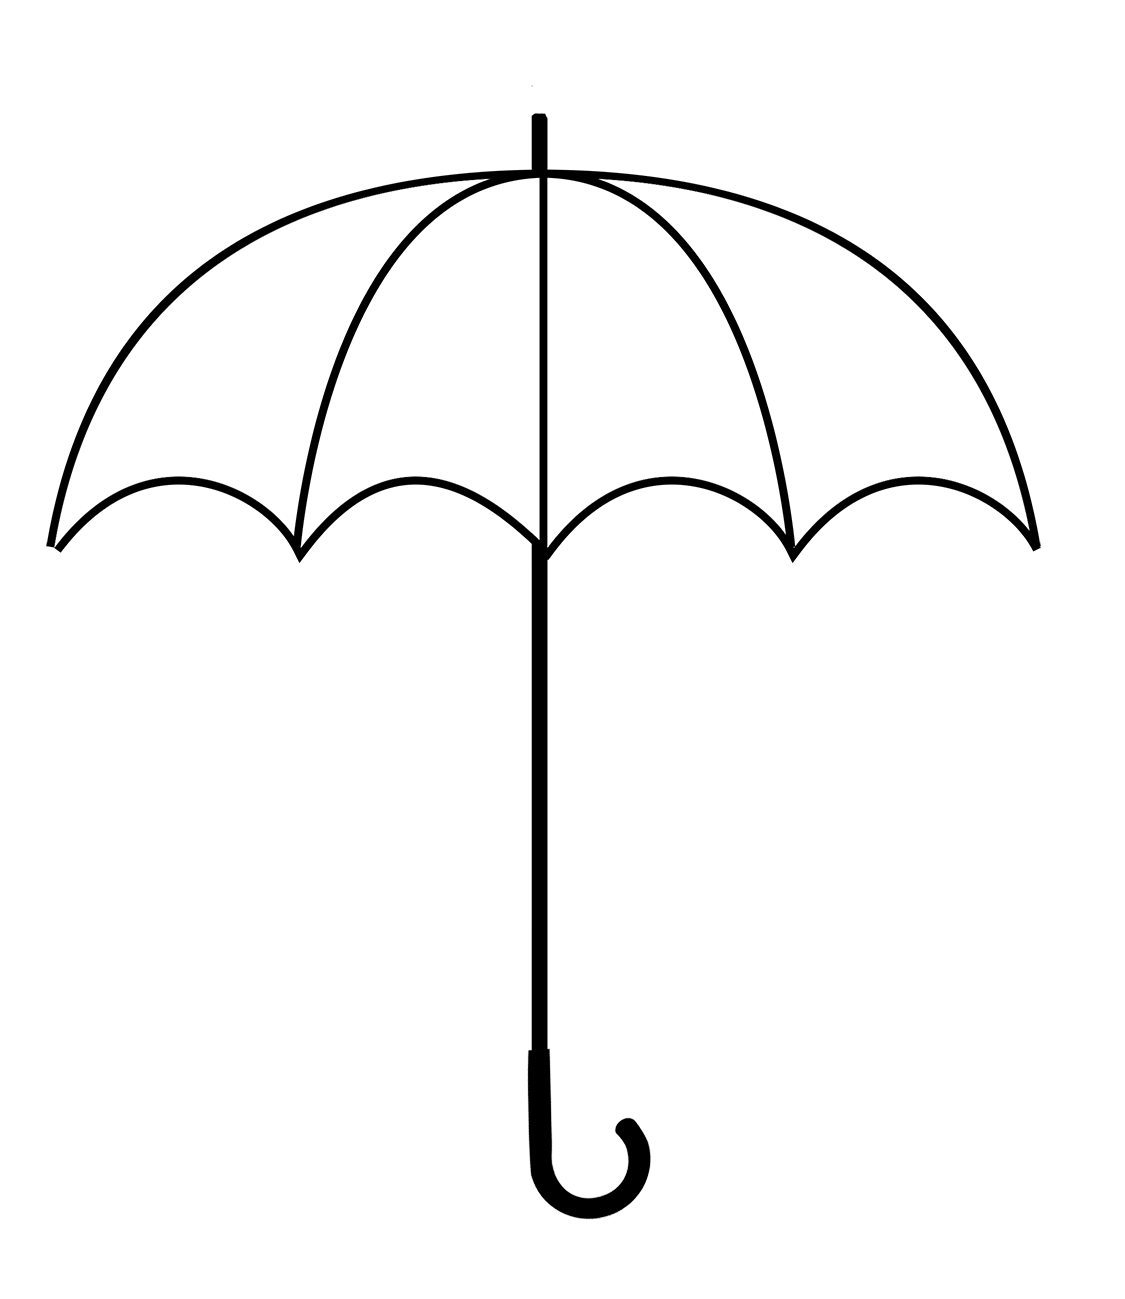 simple black and white umbrella clipart